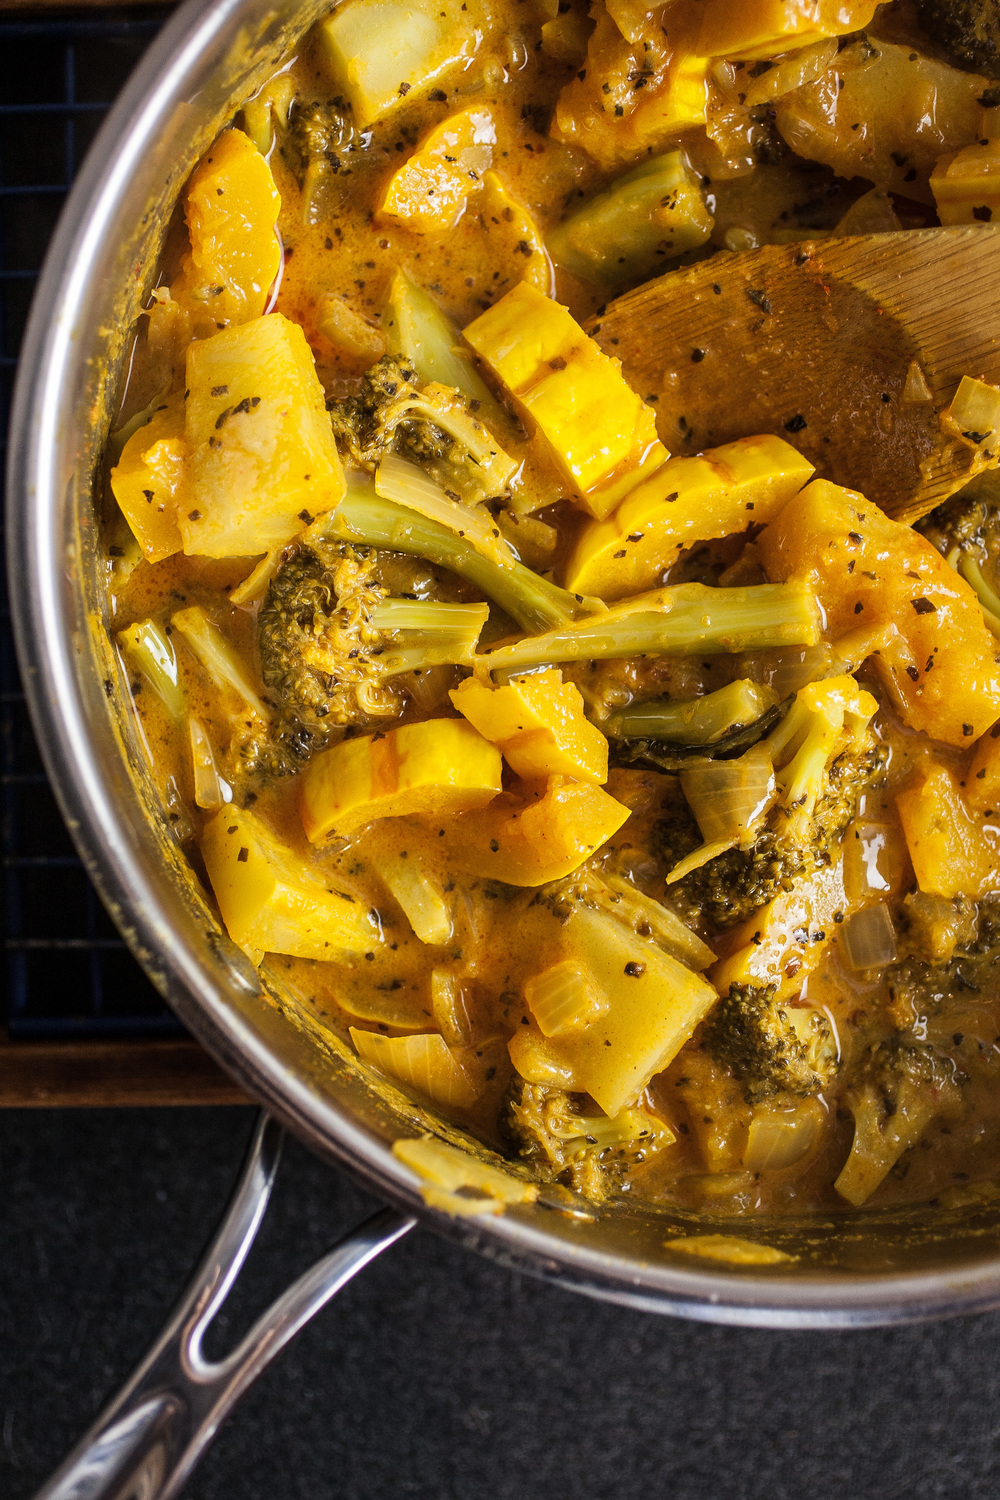 Produce On Parade - Delicata Squash & Broccoli Coconut Curry - A sweet and zesty coconut curry bathes fresh broccoli and tender delicata squash. Serve over your favorite rice or noodles for a warm and comforting mid-winter meal.